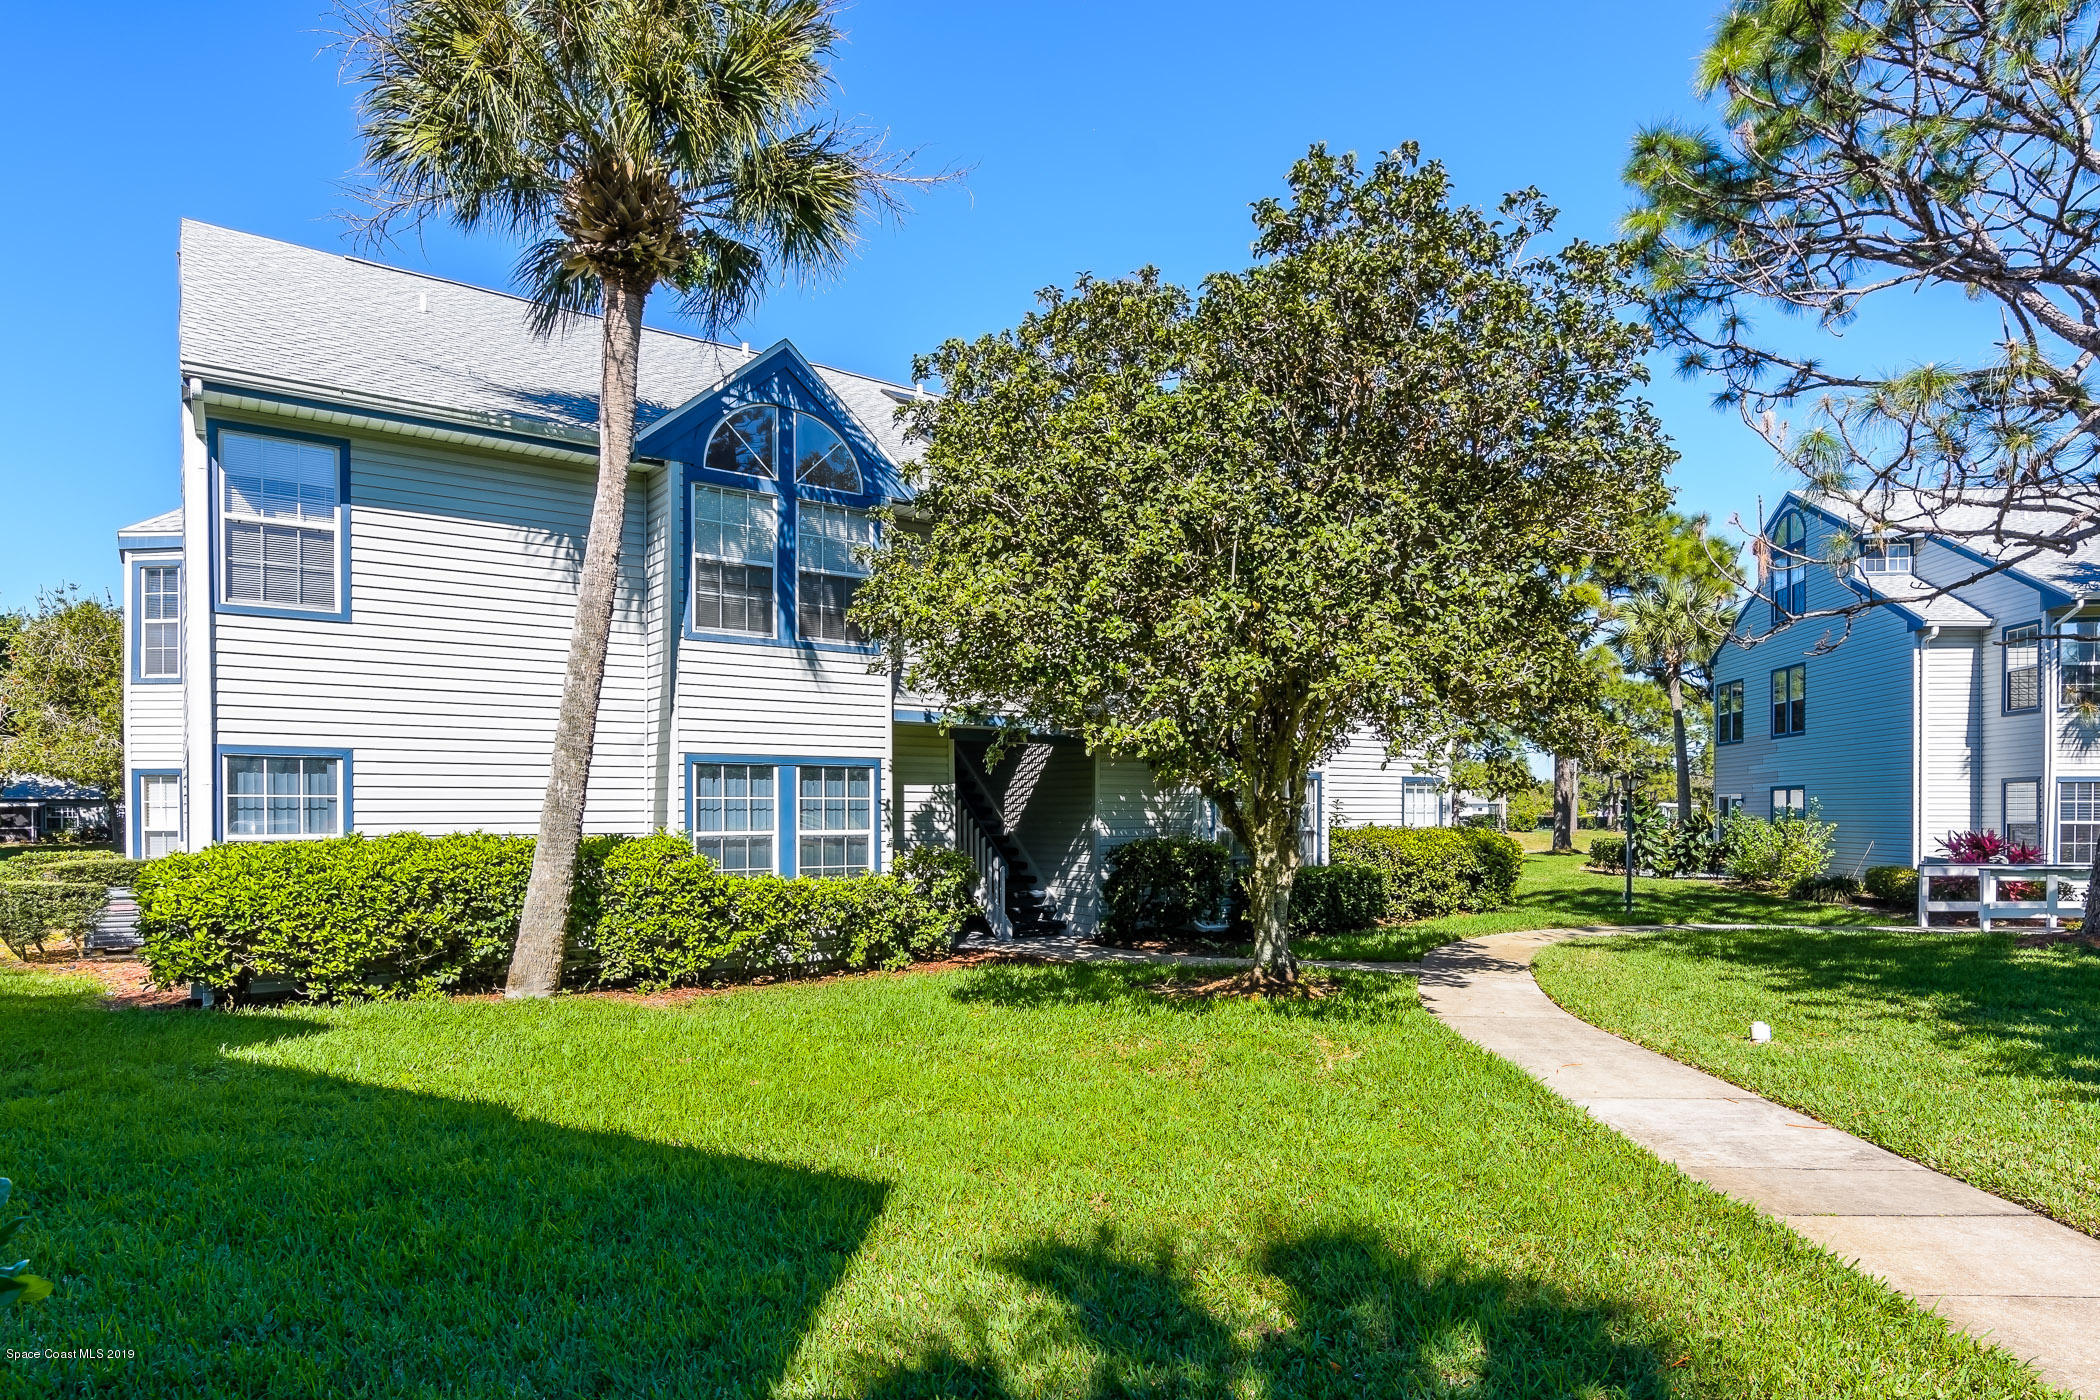 Single Family Home for Sale at 4870 Lake Waterford 4870 Lake Waterford Melbourne, Florida 32901 United States